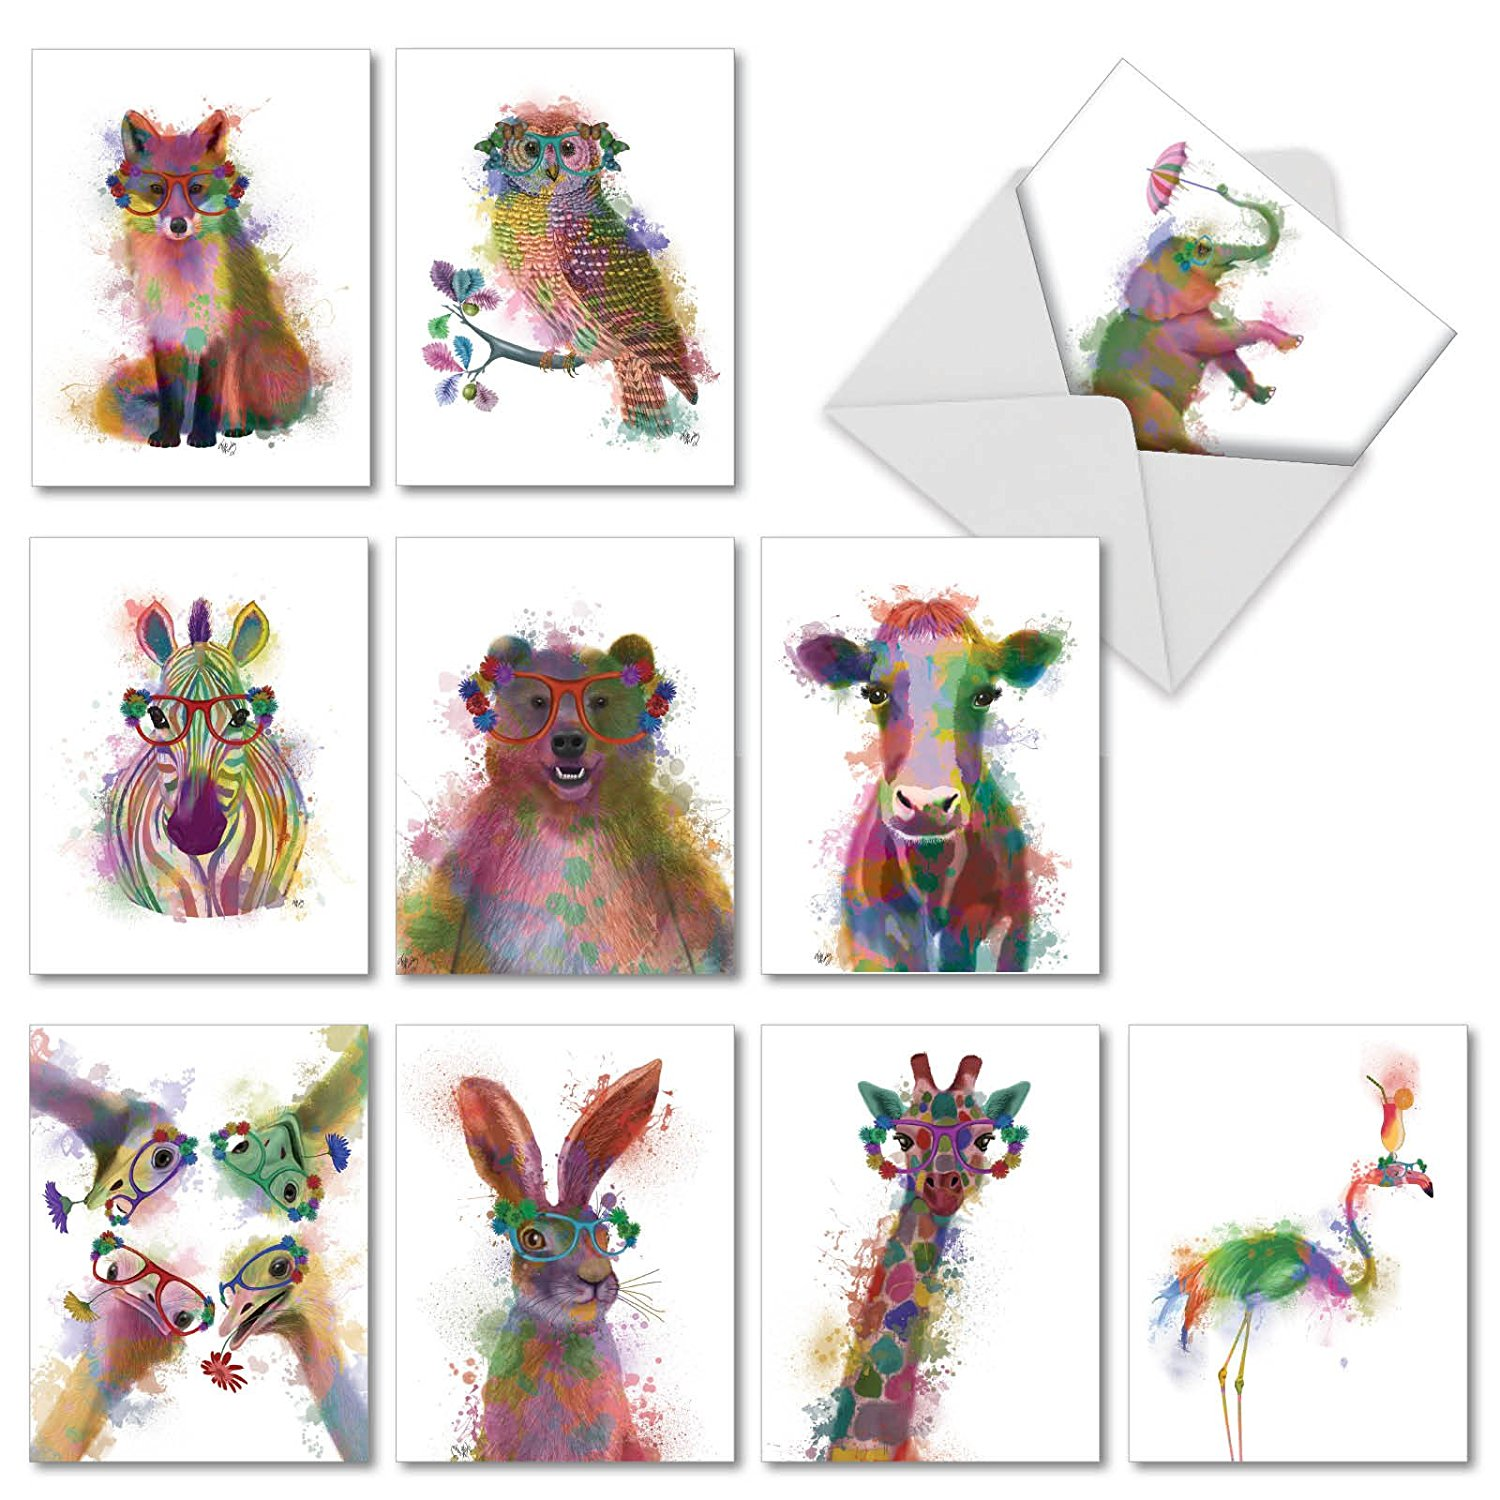 Funky Rainbow Wildlife: Assorted Blank Note Cards Featuring Hipster-Like Images of Wildlife with Colorful Paint Splotches